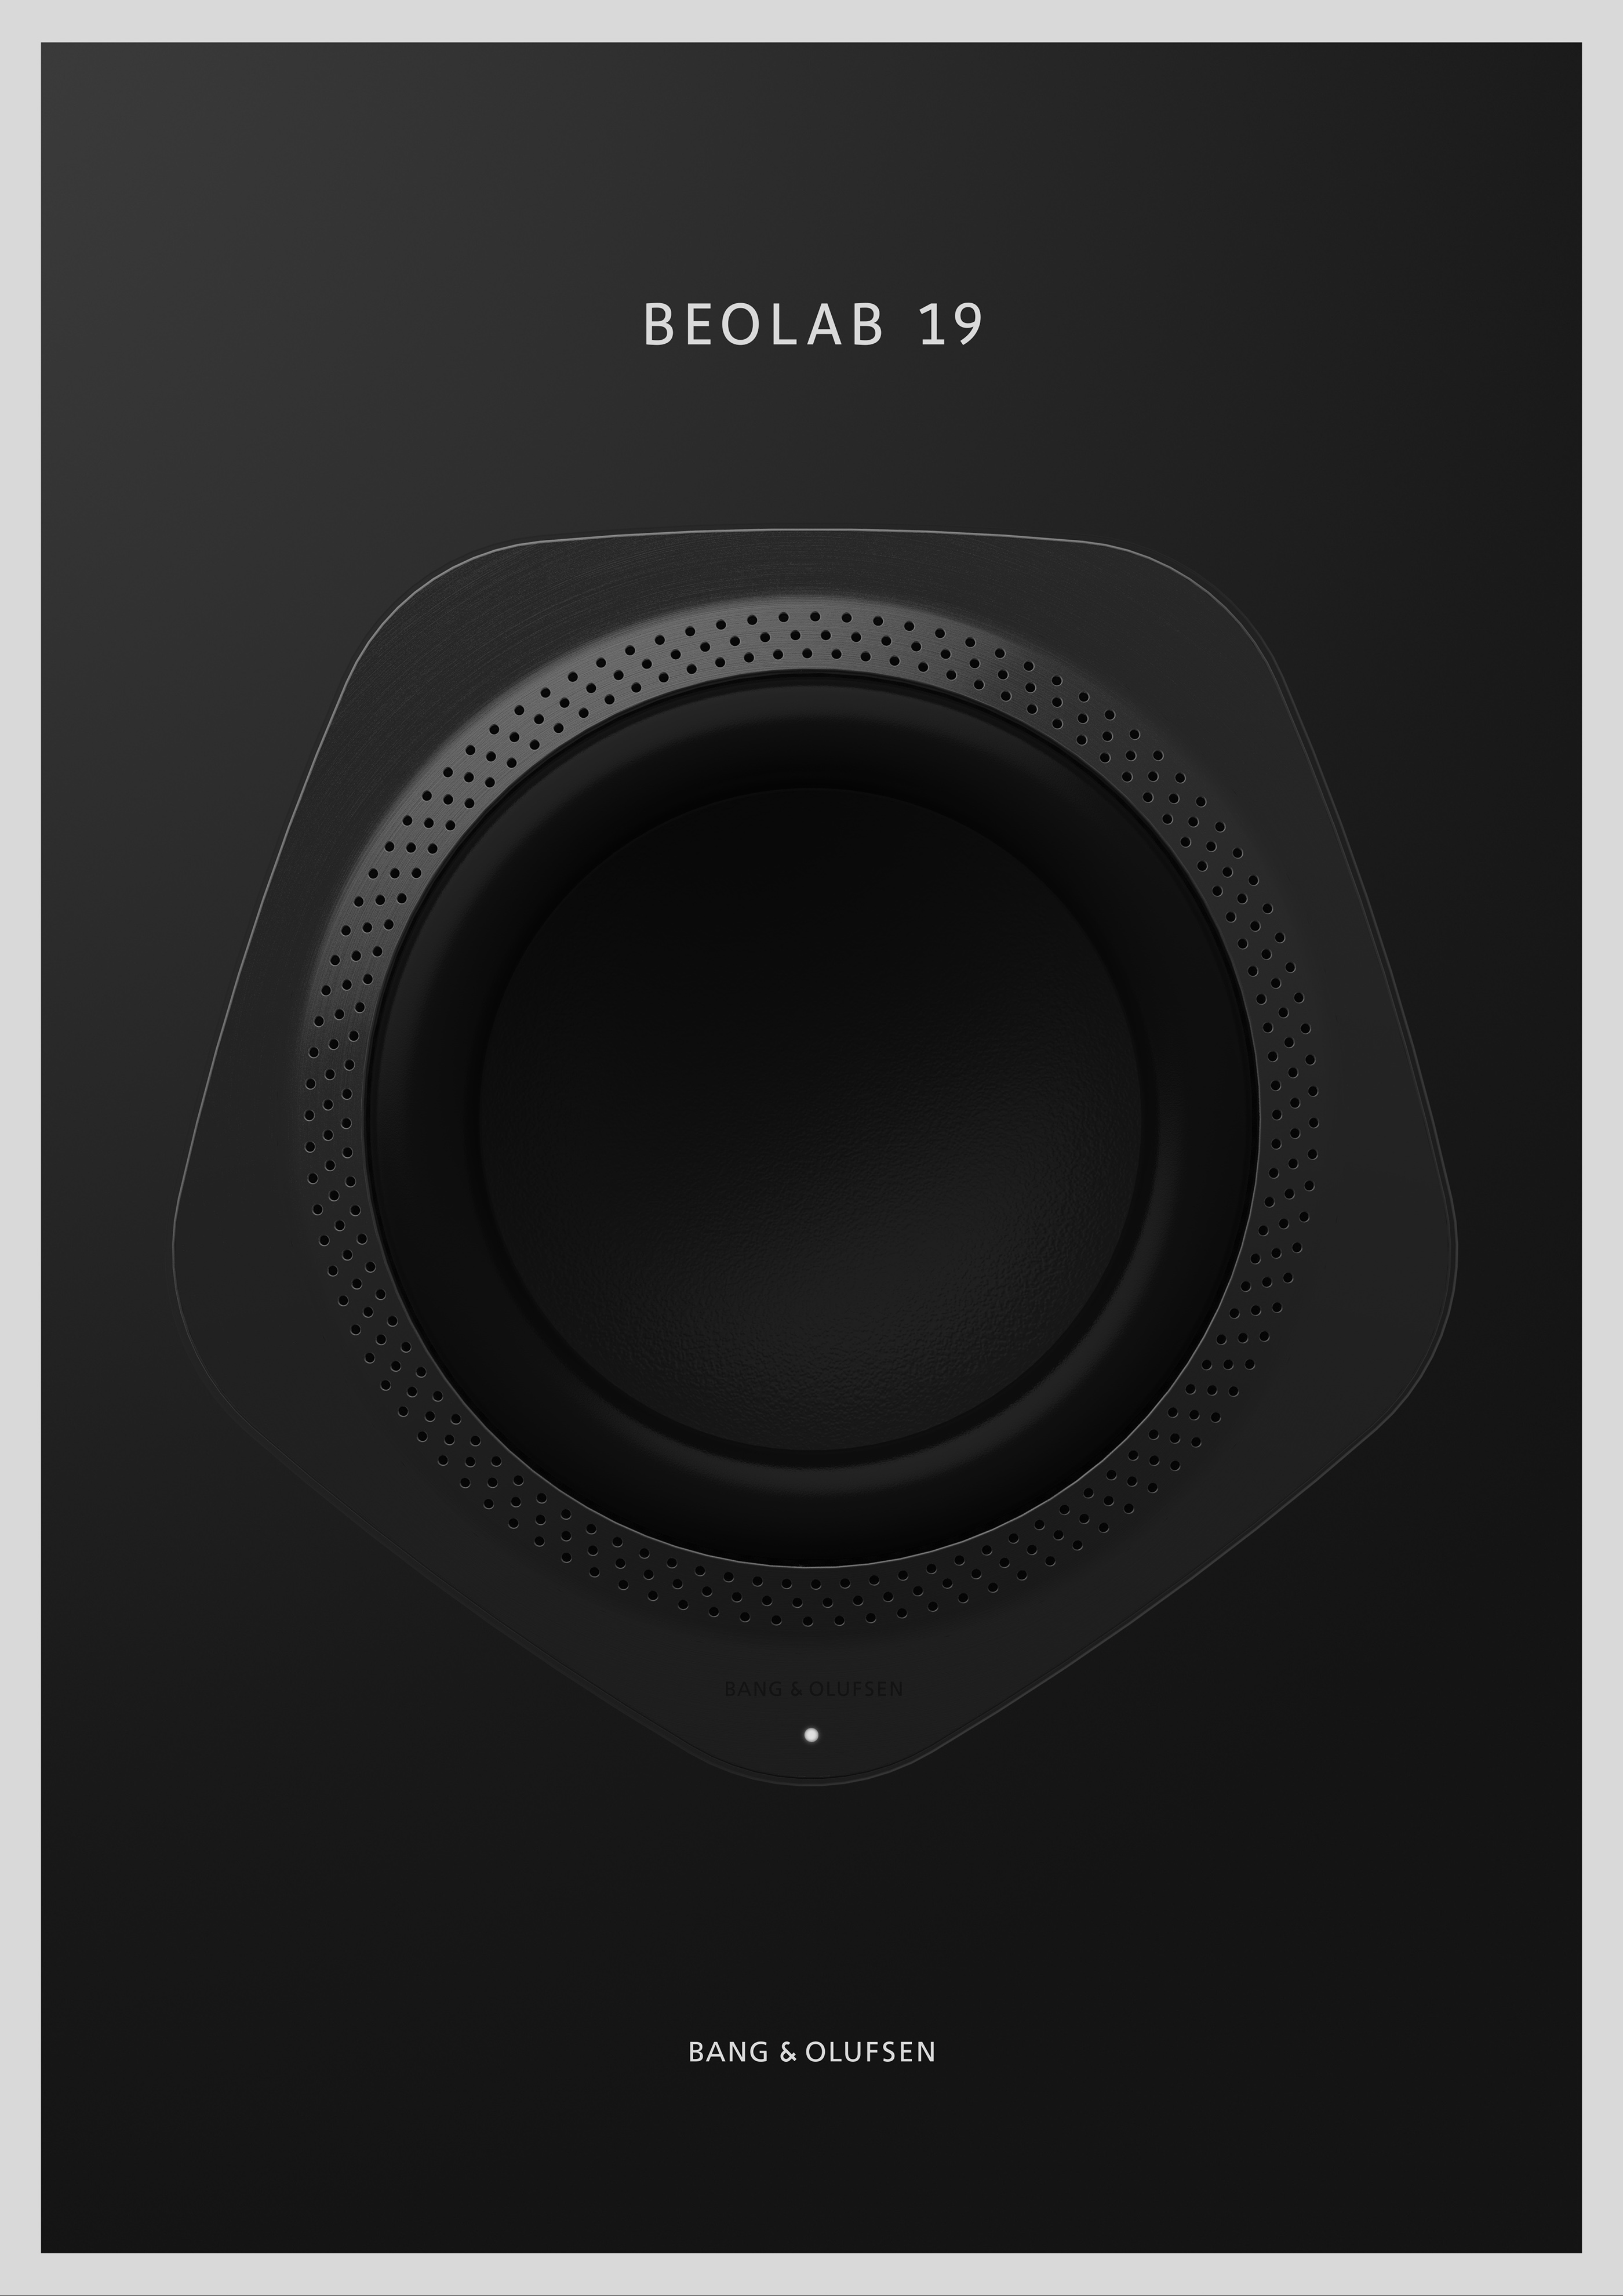 Ultra Minimalist Black Bang & Olufsen Product Flyer Idea 3